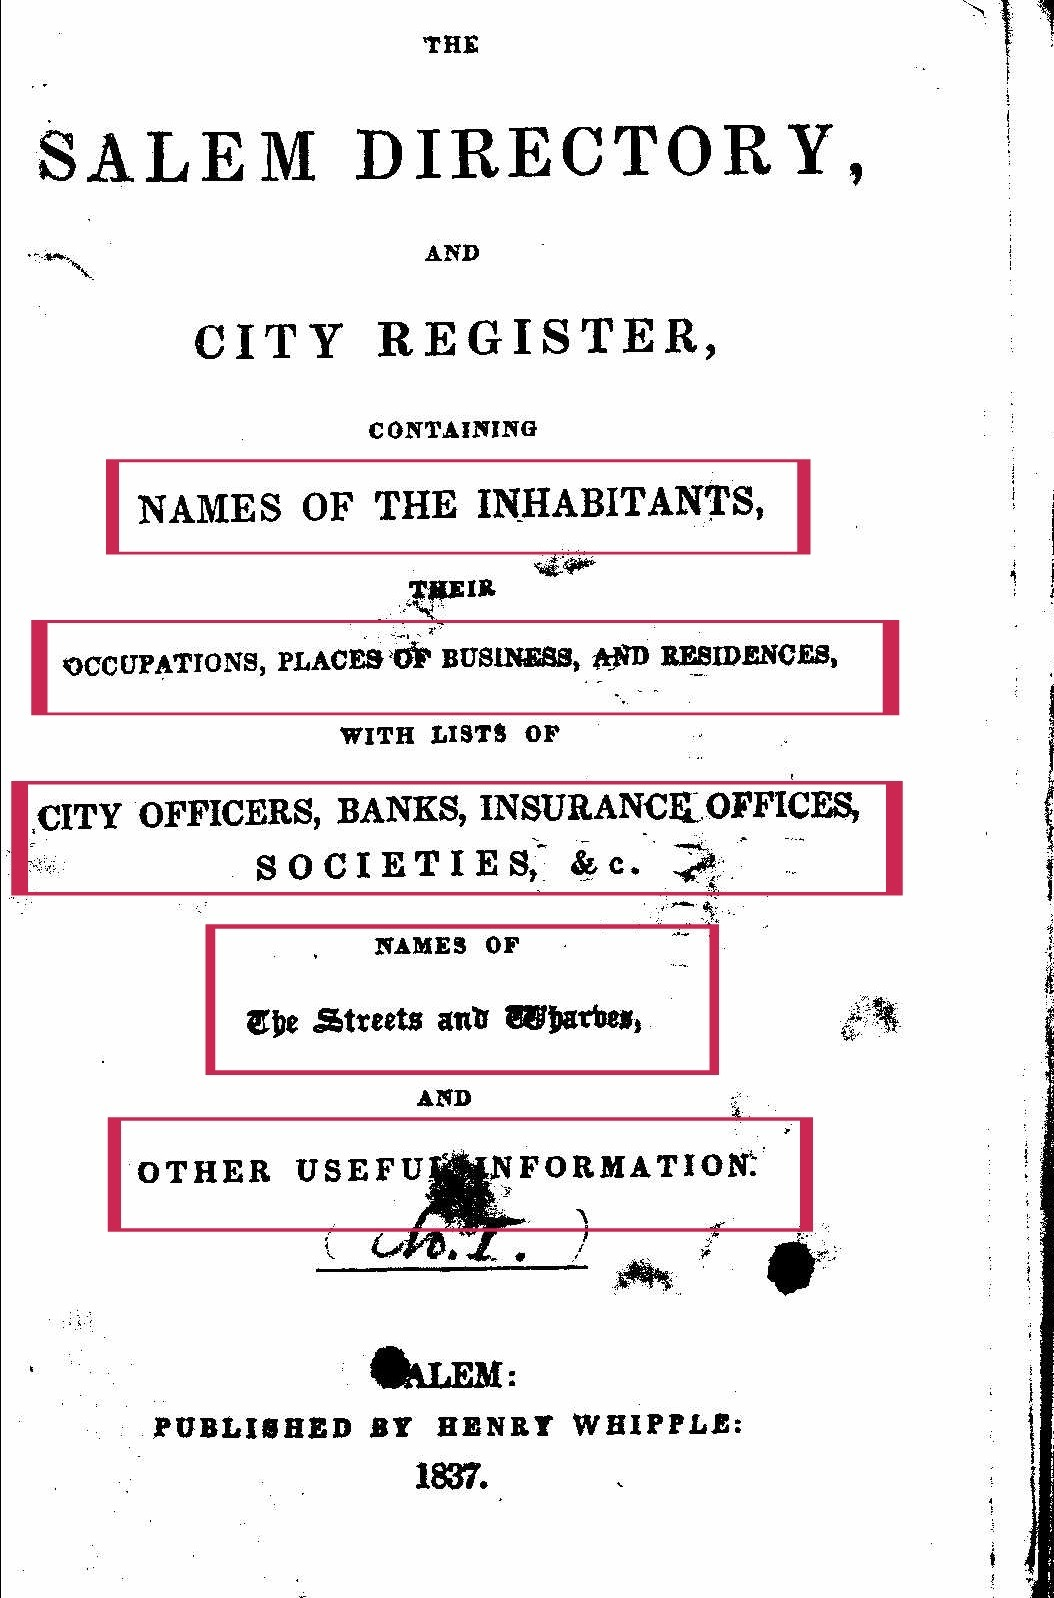 Using City Directories is an important genealogy research strategy for finding brick wall ancestors. Many free online directories can be found! #genealogy #citydirectories #ancestors